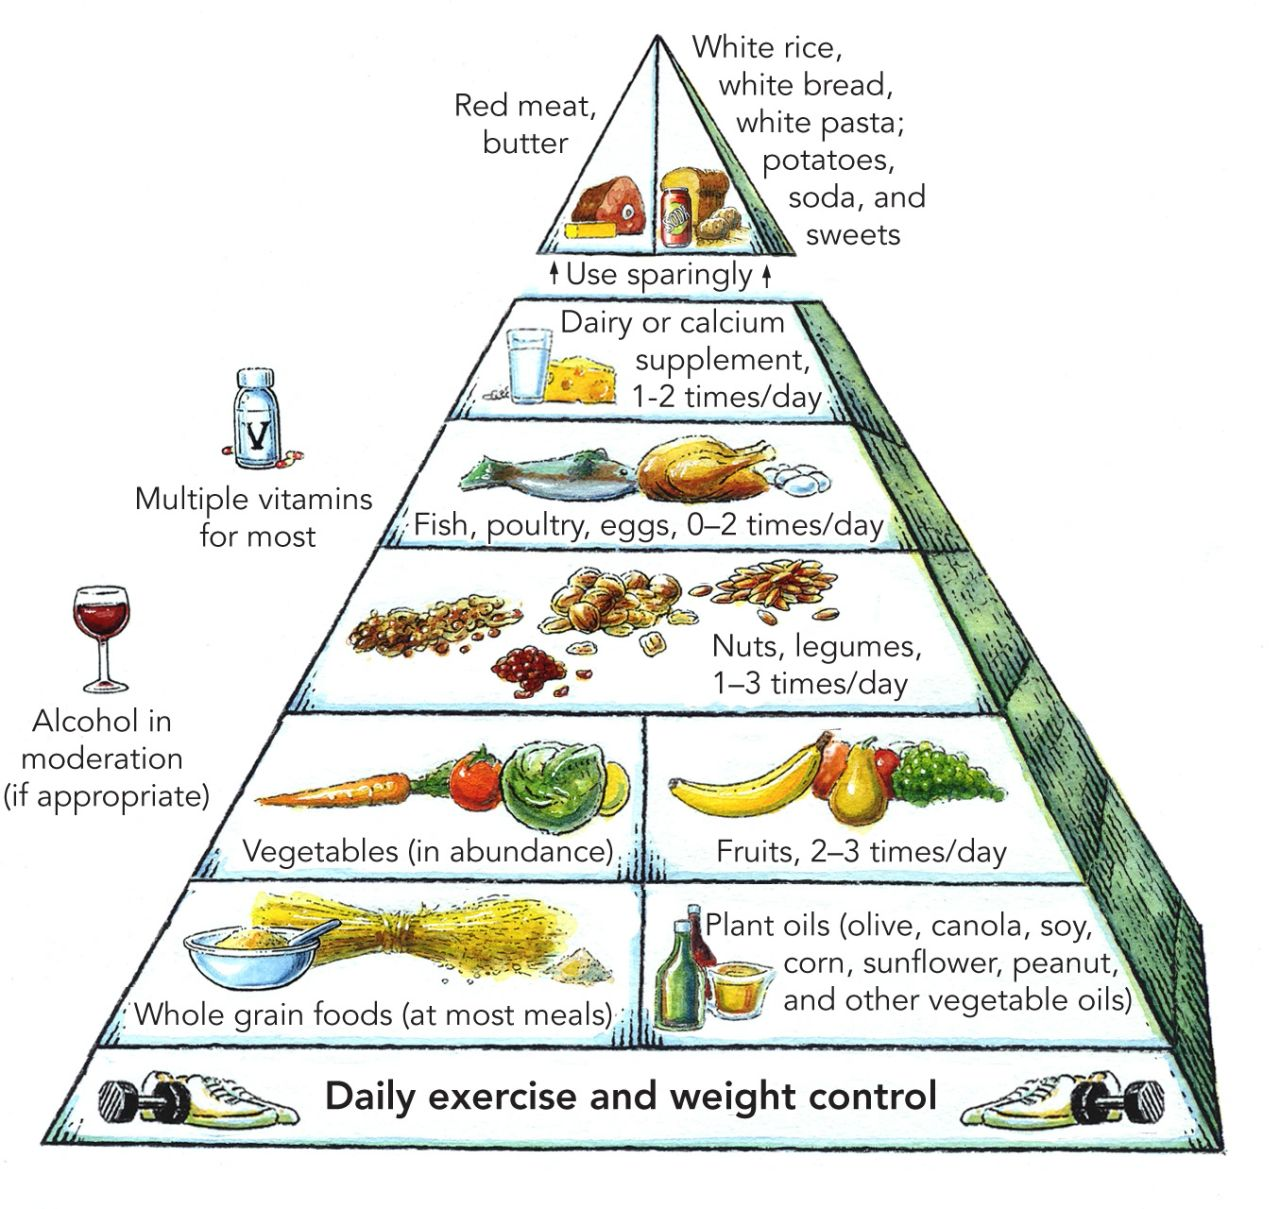 The New Healthy Eating Pyramid